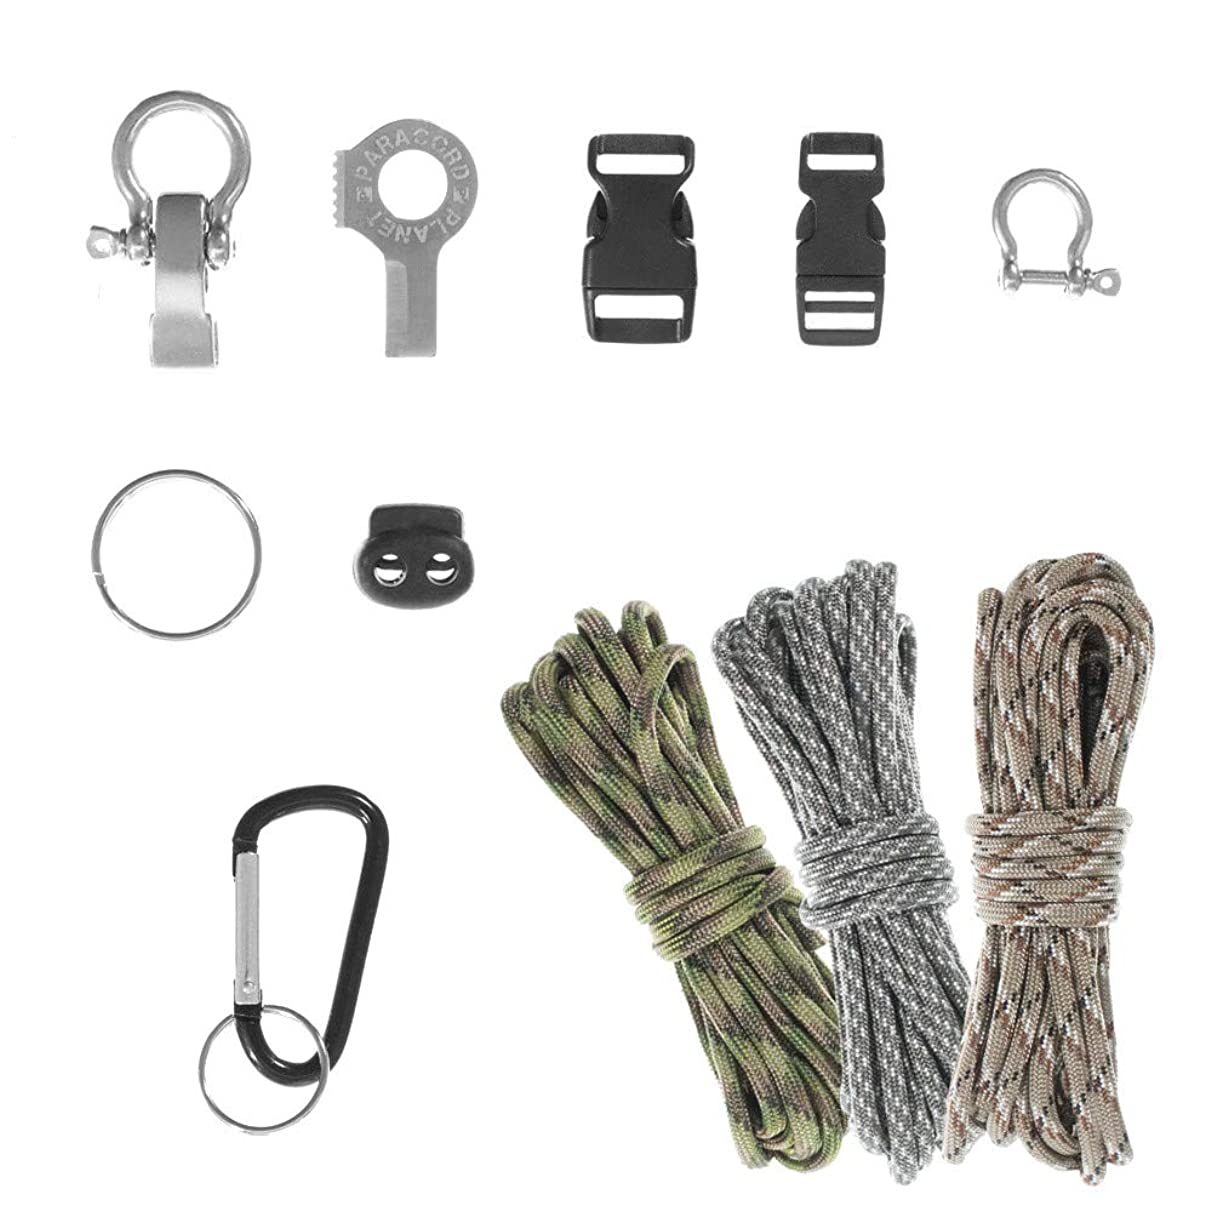 PARACORD PLANET DIY Ultimate Paracord Kit – 30 Feet of 550 Paracord & 10 Essential Necessities to Make Your Own Survival Paracord Bracelets, Lanyards, Tools